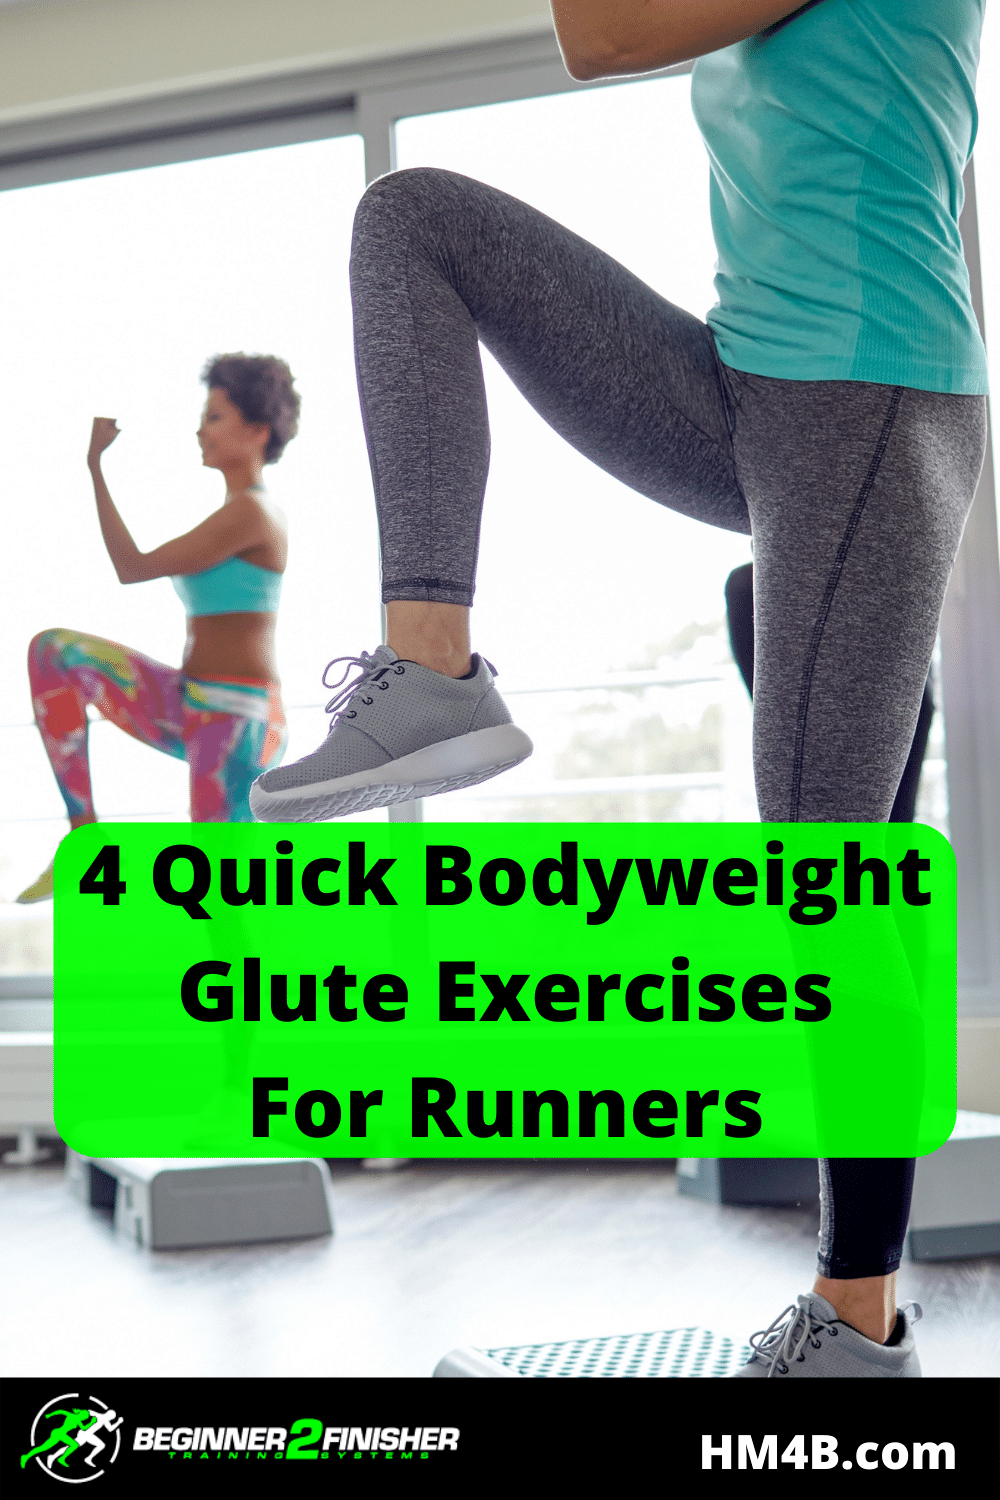 Best Bodyweight Glute Exercises For Runners To Prevent Injury